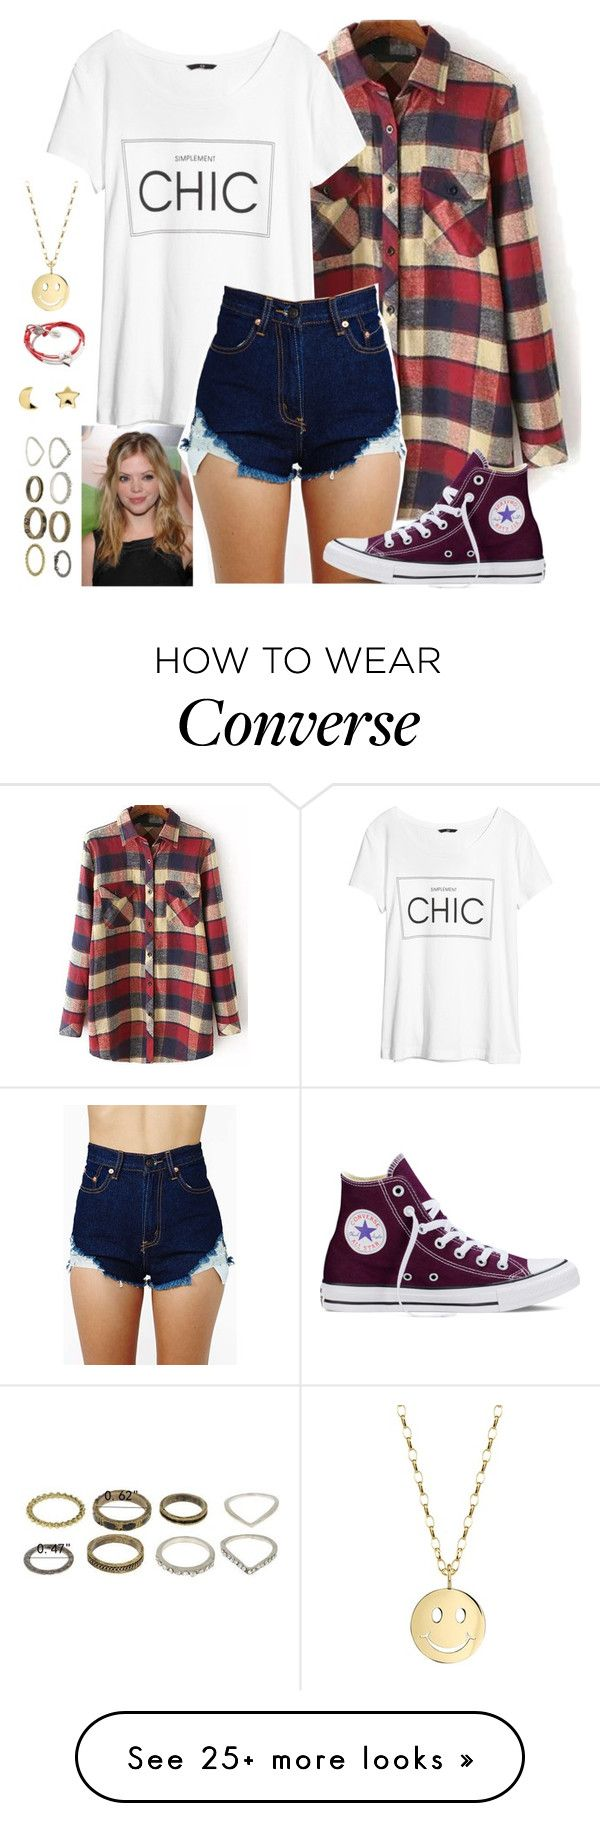 """six hundred and twenty nine"" by jamie-e-s on Polyvore featuring H&M, Converse, Sydney Evan, Lizzy James and Erica Weiner"